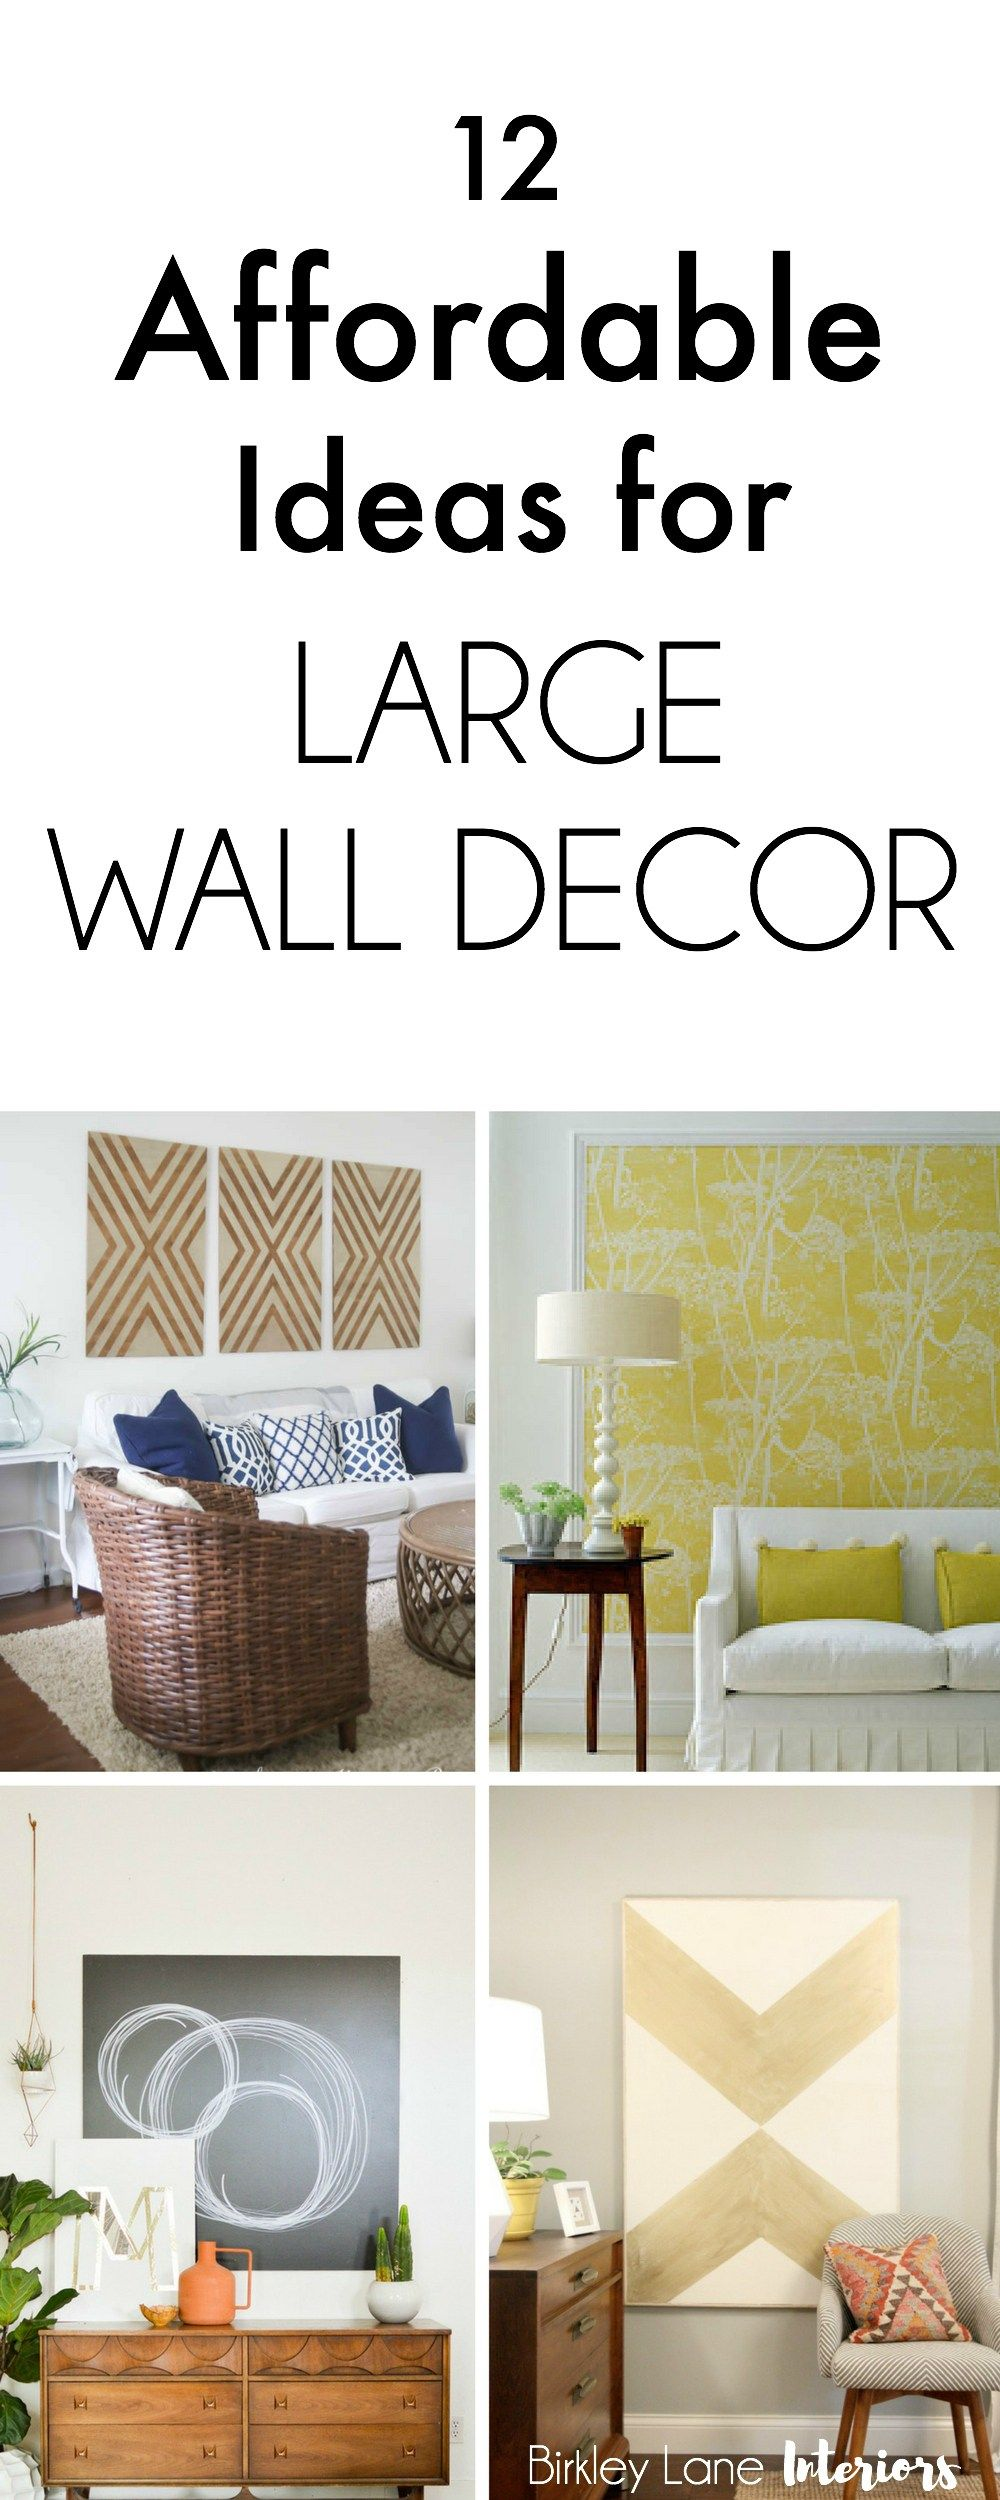 4 Affordable Ideas for Large Wall Decor  Birkley Lane Interiors